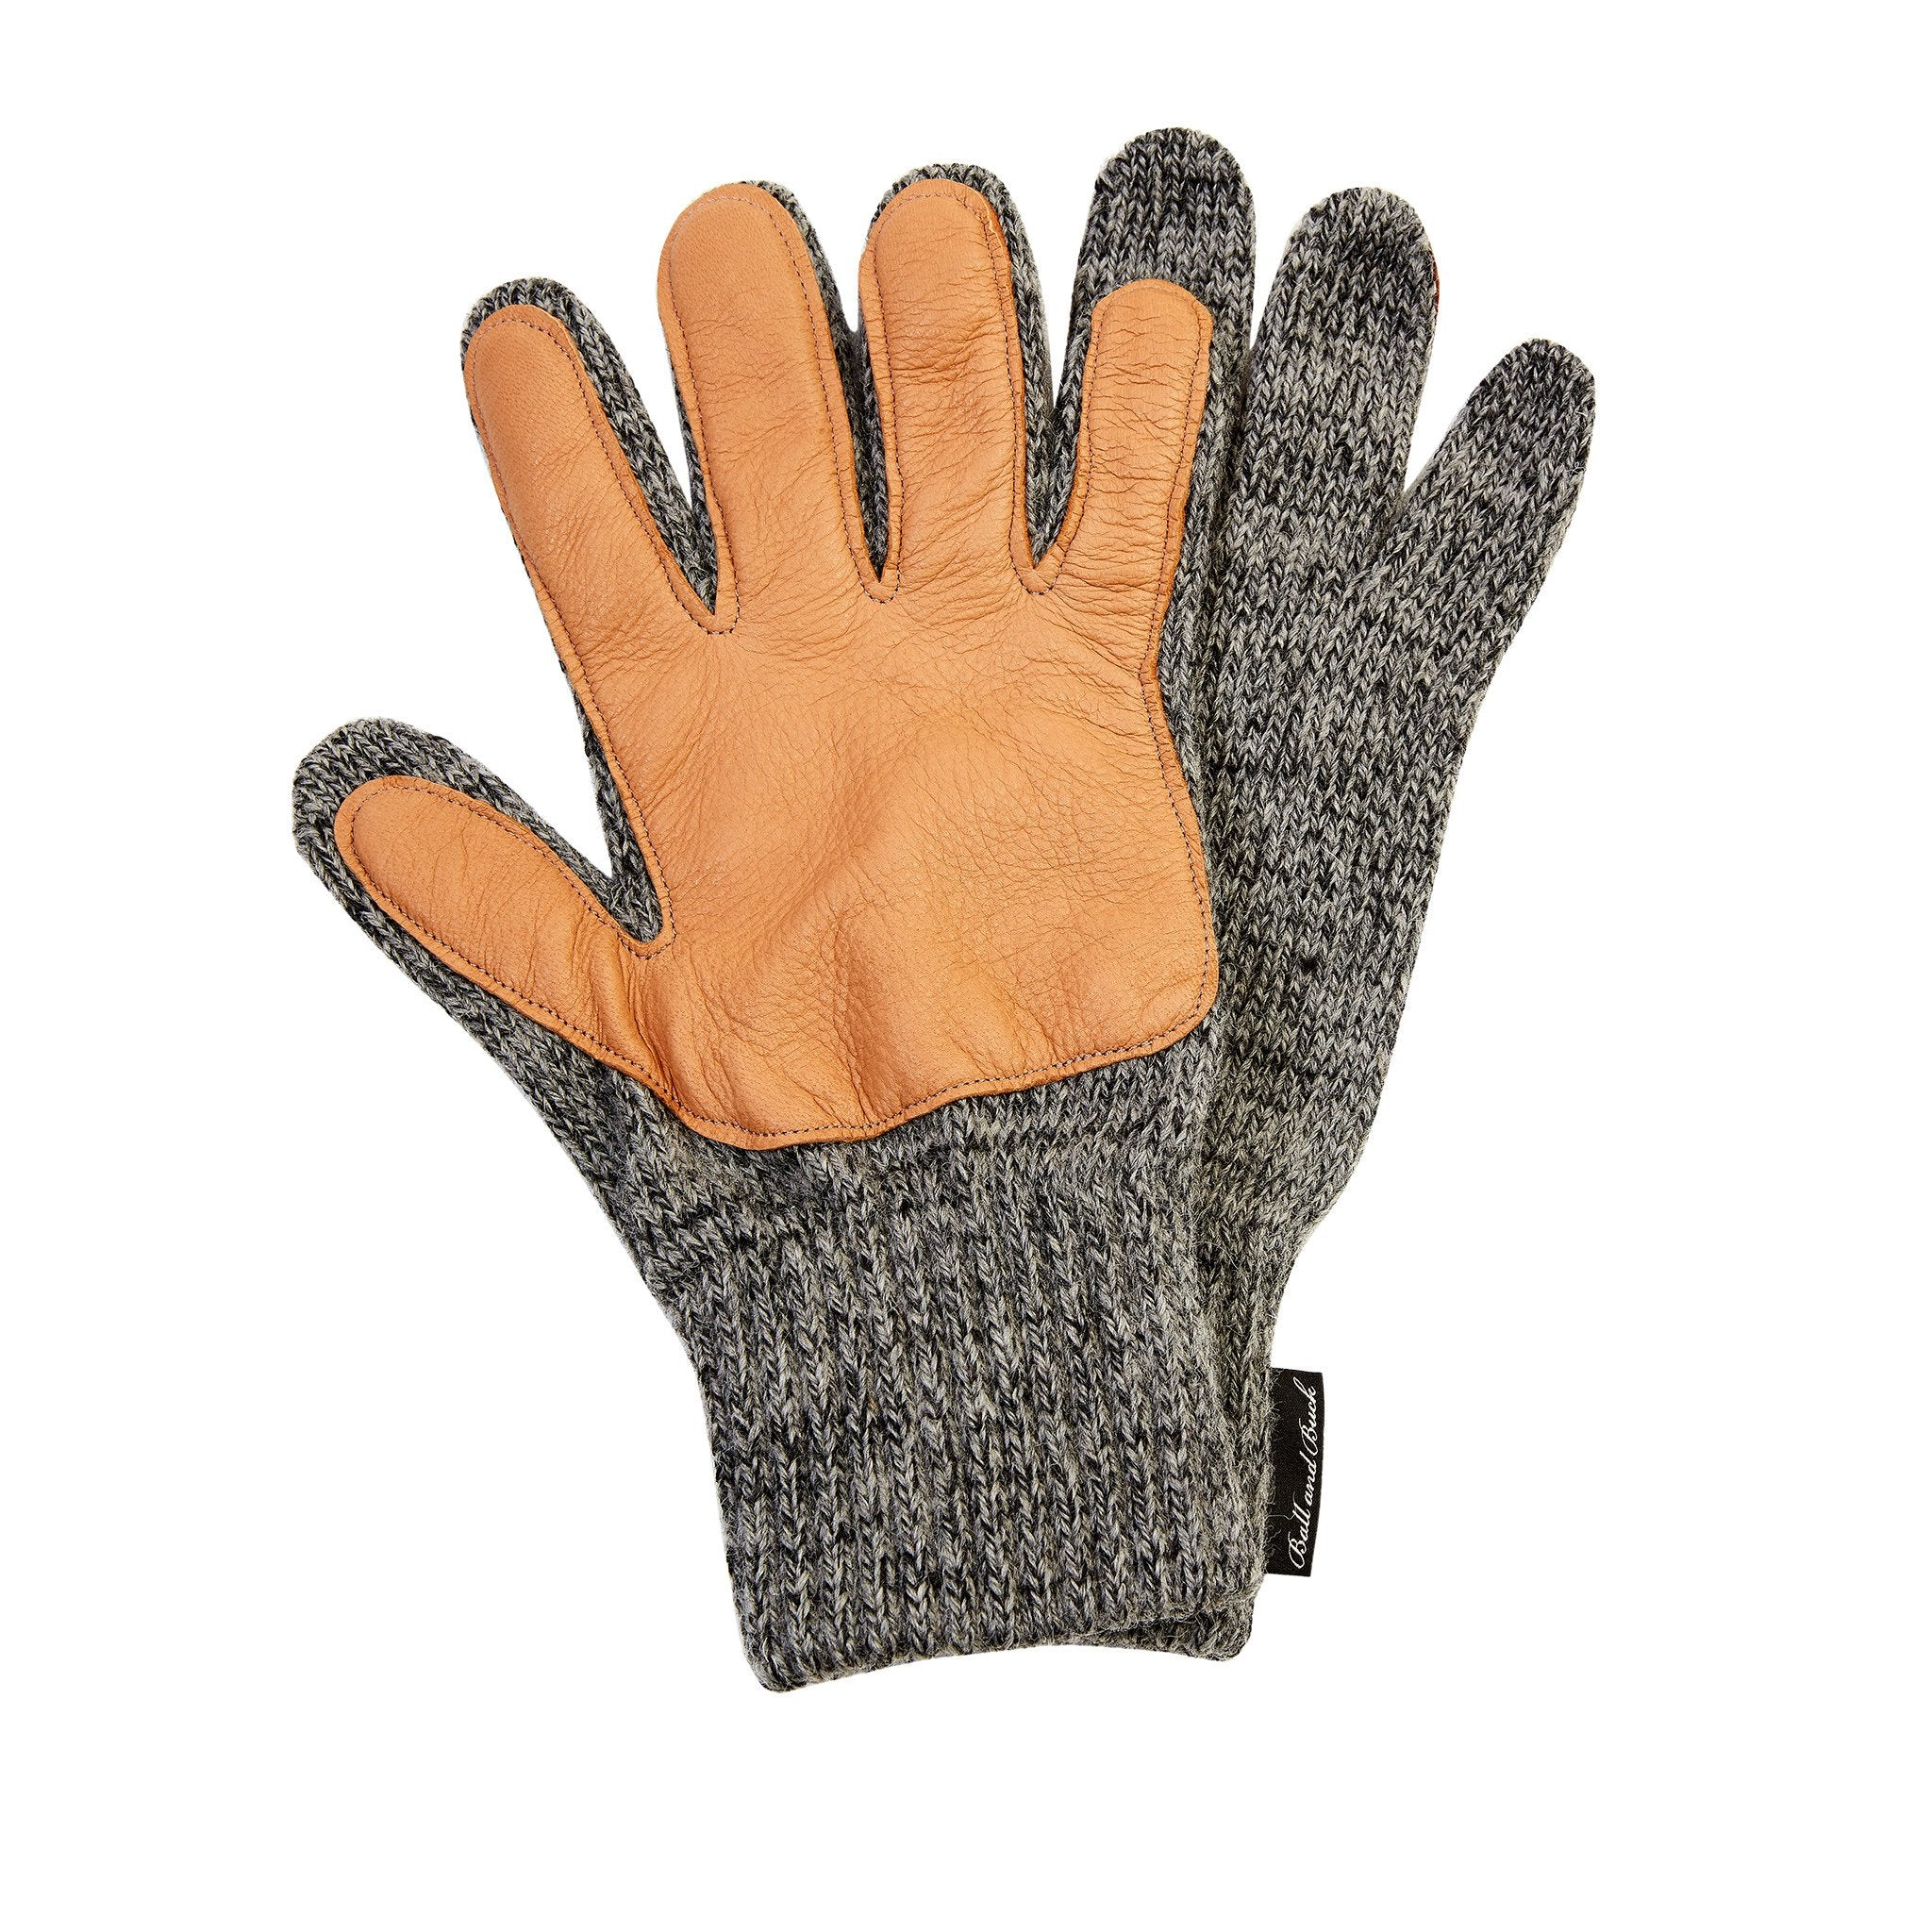 The Wool Glove, Charcoal/Tan